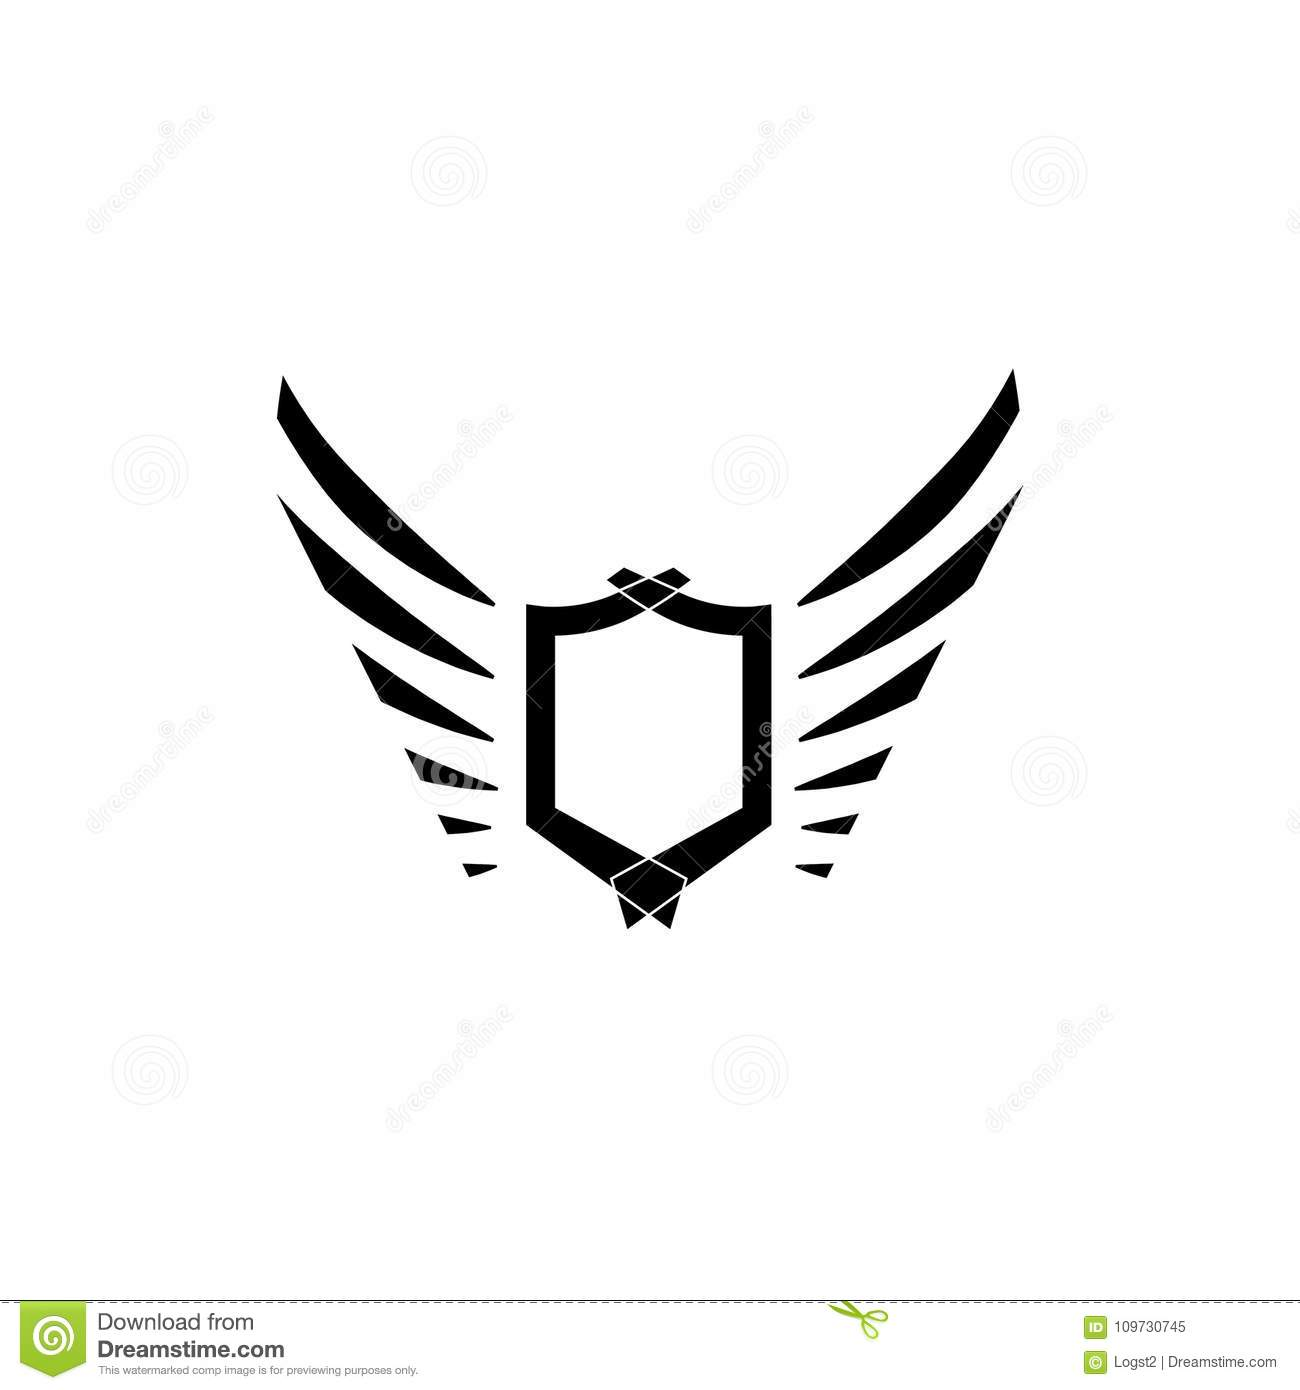 wings logo vector icon sign graphic illustration symbol eagle wing brand fly emblem stock vector illustration of graphic dynamic 109730745 https www dreamstime com wings blazon vector logo vector logo wing icon flying design element fly emblem sign symbol wings logo vector icon sign graphic image109730745